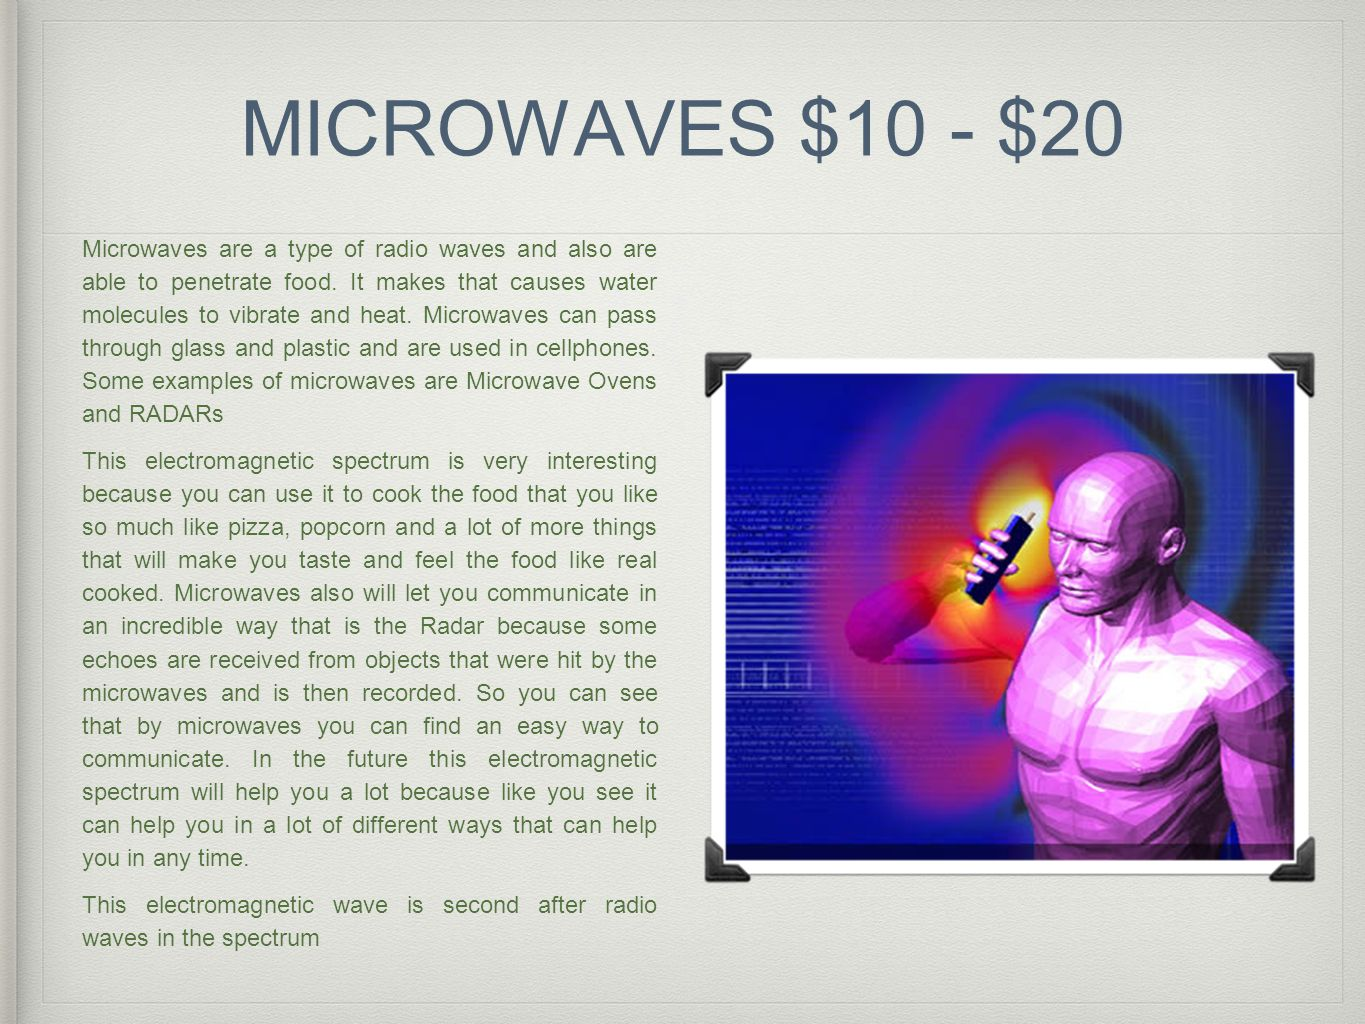 MICROWAVES Dangers: -A danger is that the waves of the microwaves can make have cancer and that can kill you.